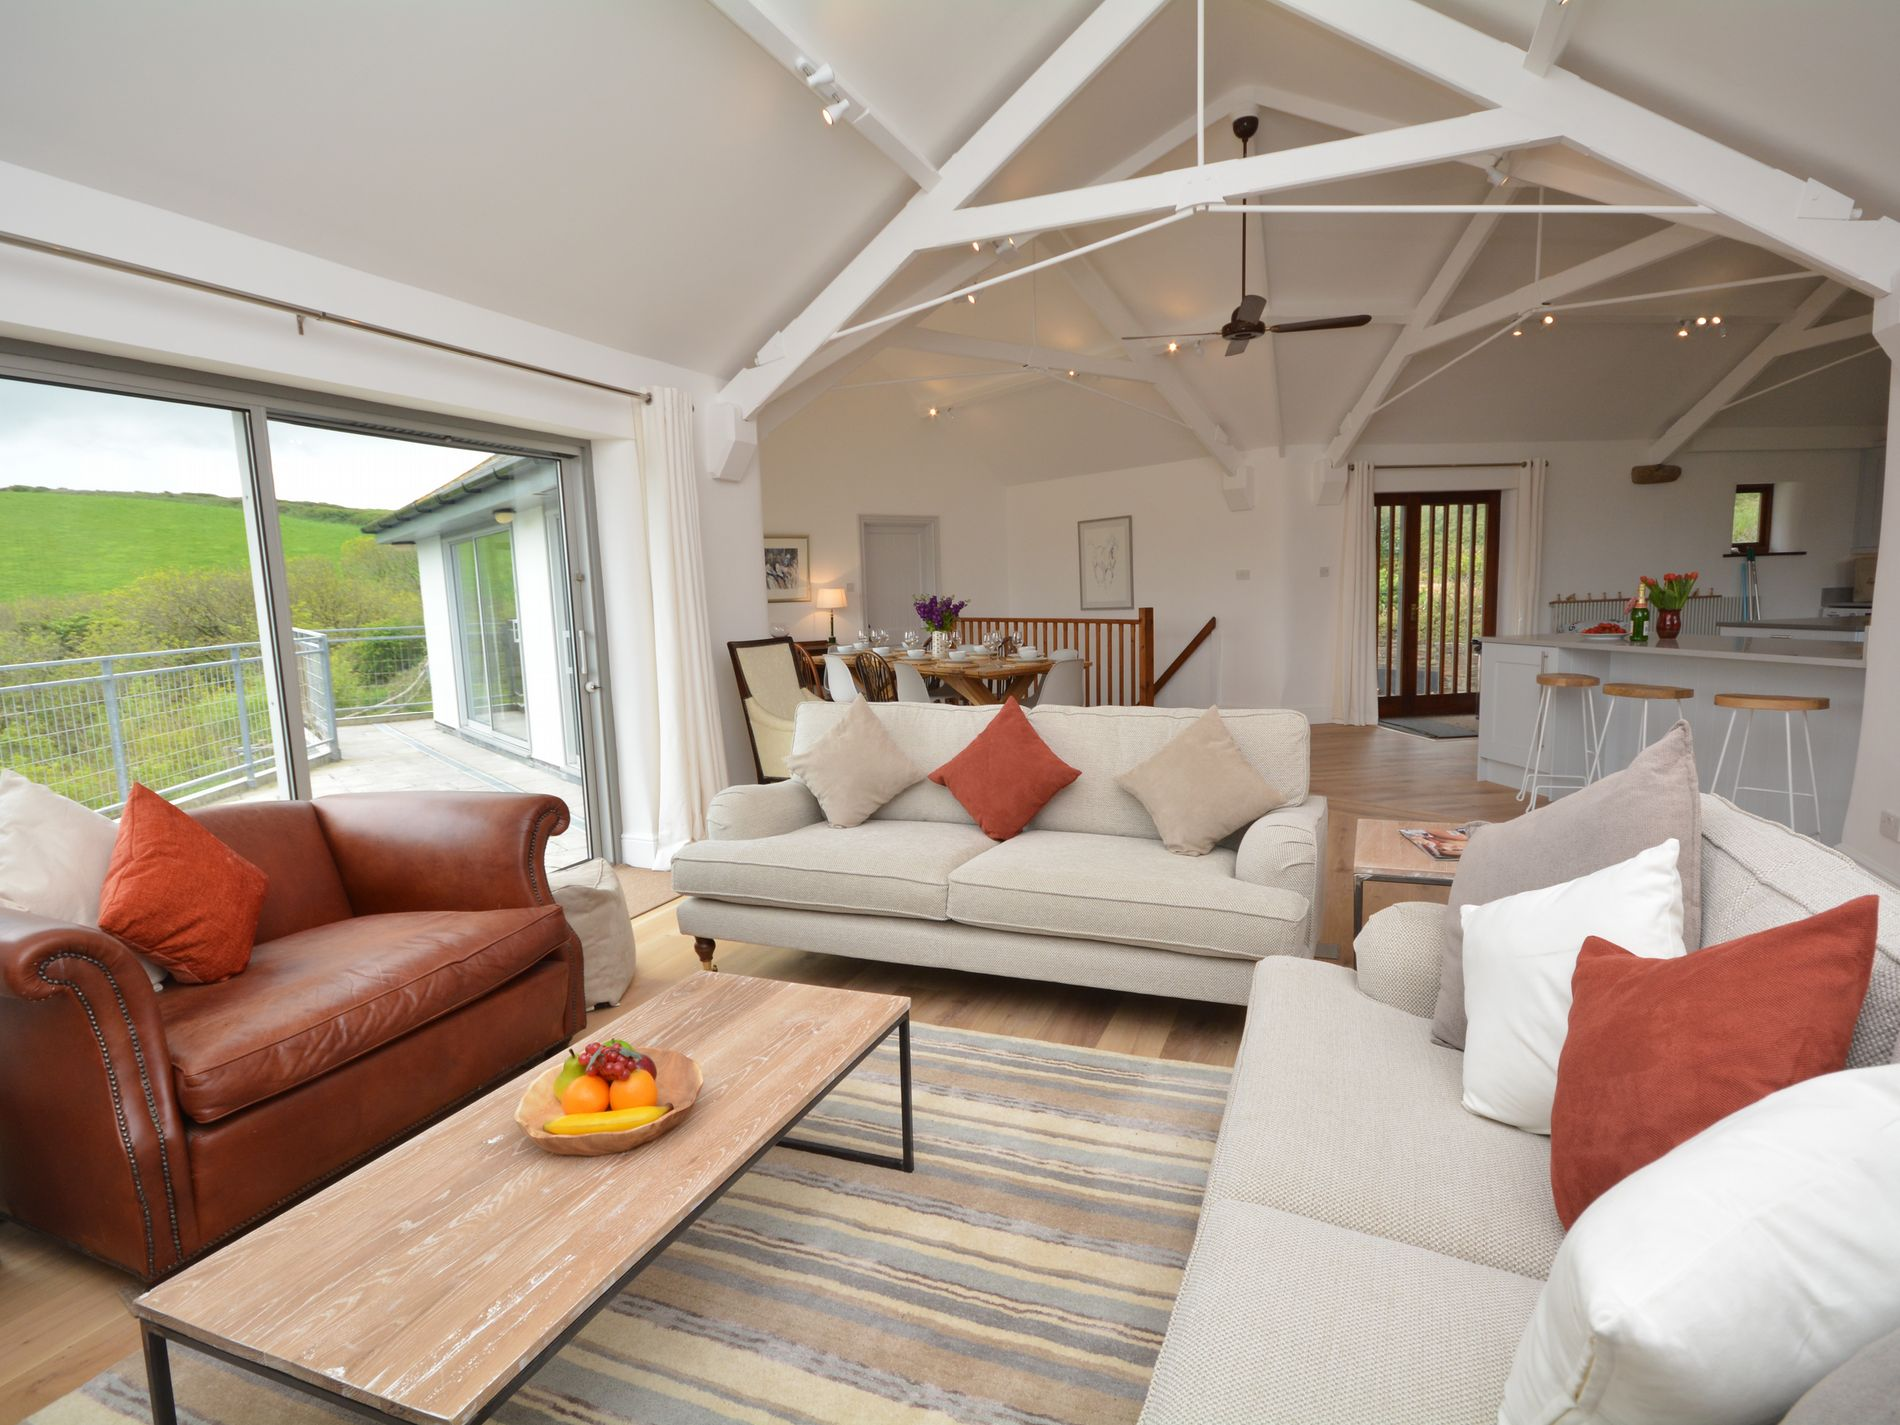 5 Bedroom Cottage in Bude, Cornwall